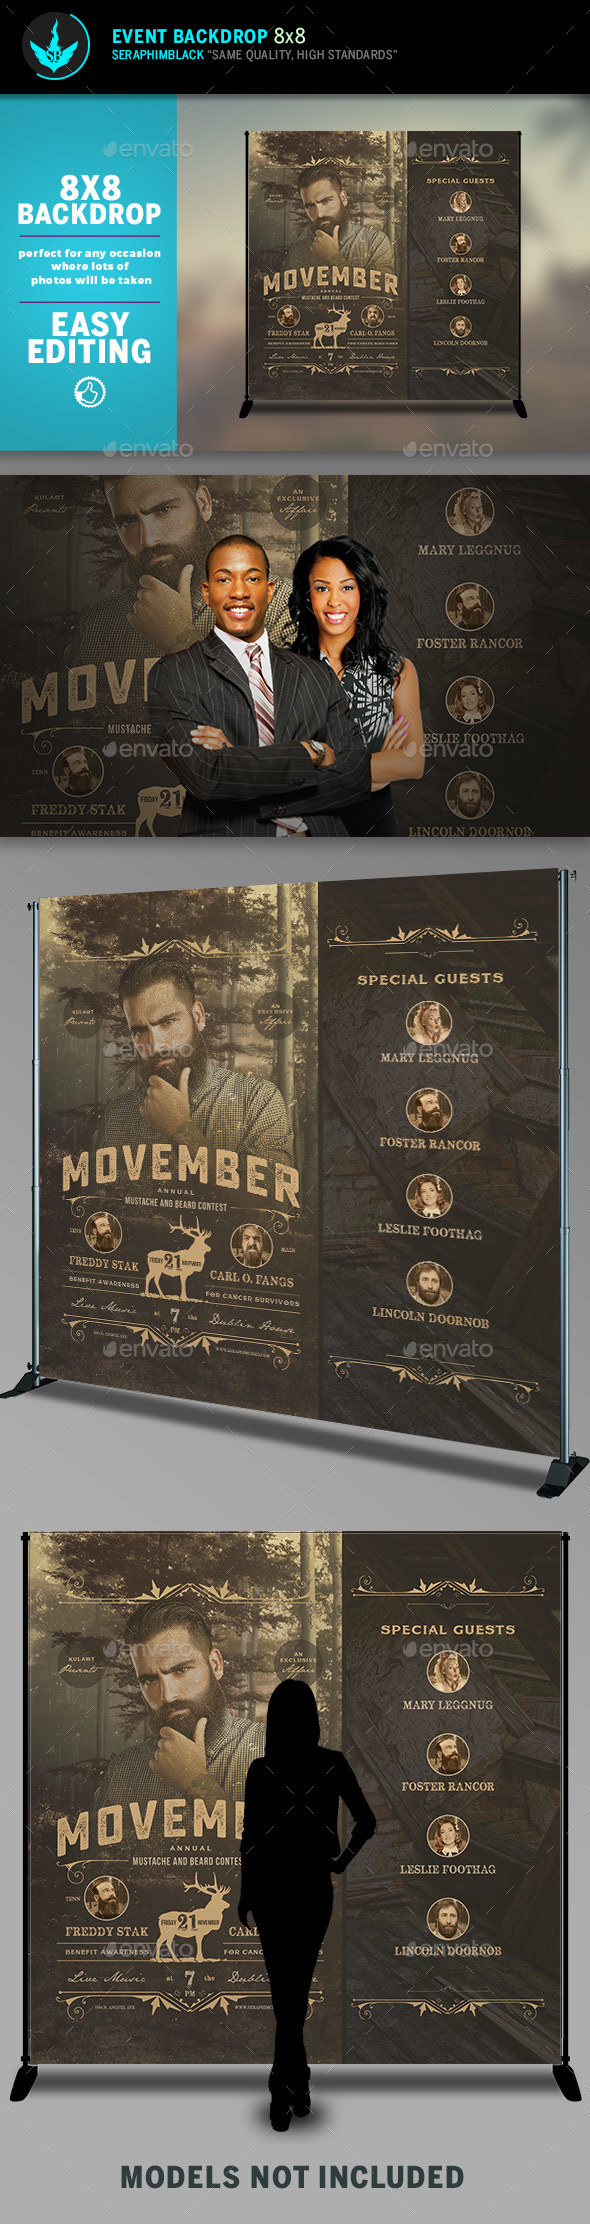 GraphicRiver Movember 8x8 Event Backdrop Template 20491502